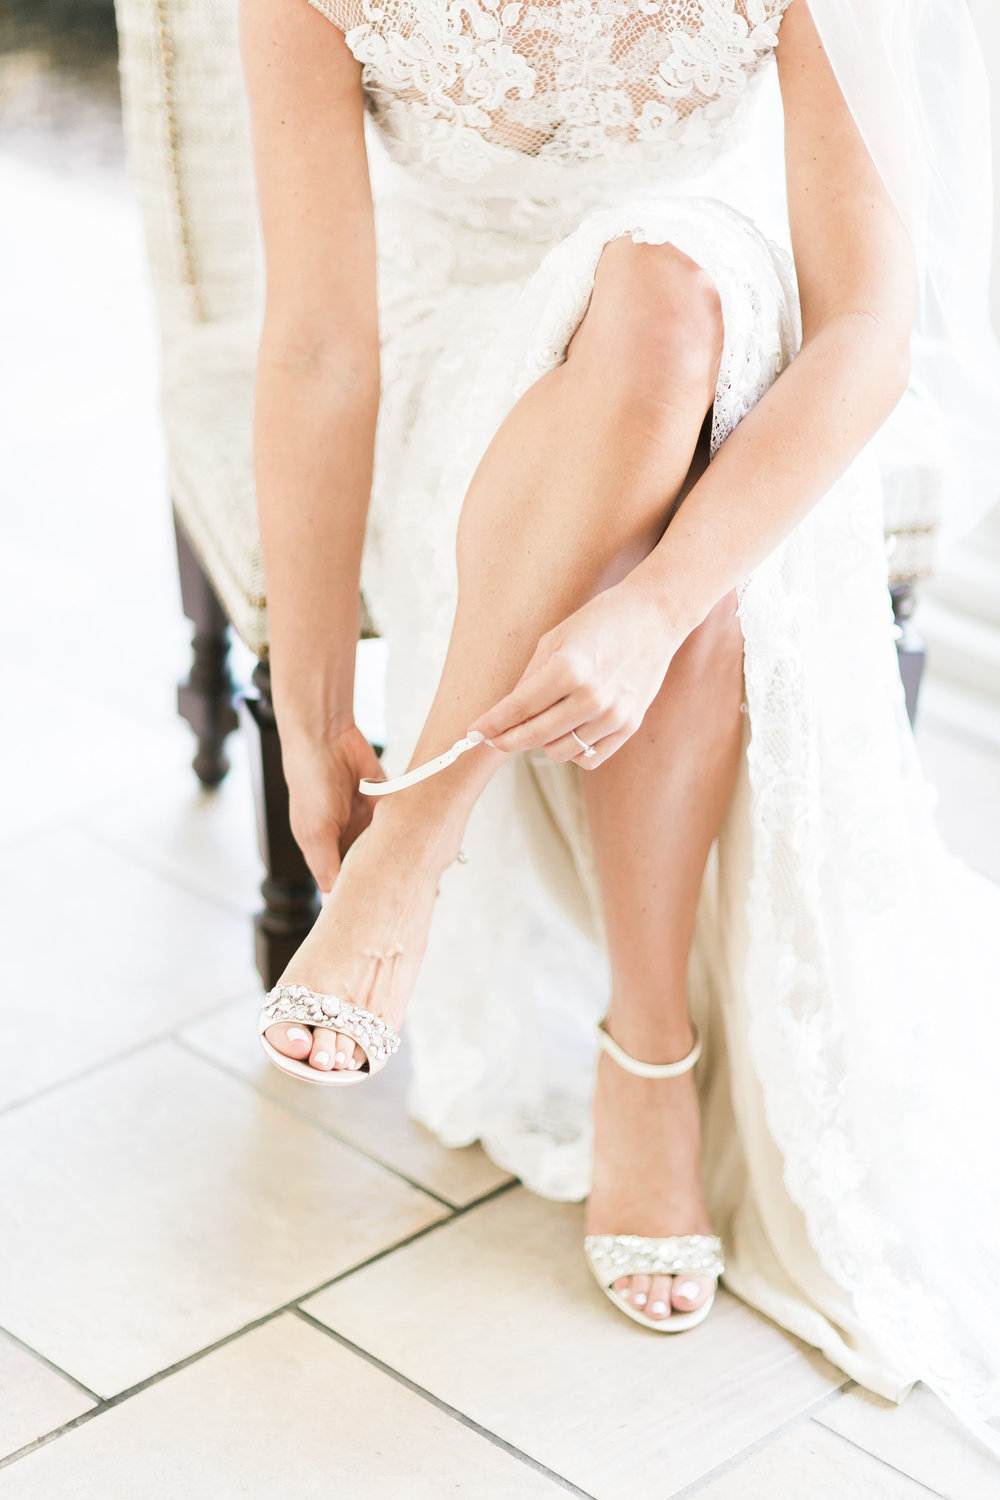 Bride putting on wedding shoes.    CREDITS:  Destination Wedding Planner  ANDREA EPPOLITO EVENTS   ·  Images by  J.ANNE P  HOTOGRAPHY   ·  Video  HOO FILMS   ·  Venue Ritz Carlton Bacara Santa Barbara  · Gown  MONIQUE LHULLIER  · Bridesmaids Dresses  SHOW ME YOUR MUMU  · Stationery  SHE PAPERIE  · Bride's Shoes  BADGLEY MISCHKA  · Hair and Makeup  TEAM HAIR AND MAKEUP  · Floral  BLUE MAGNOLIA  · Linen  LA TAVOLA  · Decor Rentals  TENT MERCHANT  · Calligraphy  EBB  ·Lighting  FIVE STAR AV  · Ice Cream Station  MCCONNELL'S ICE CREAM